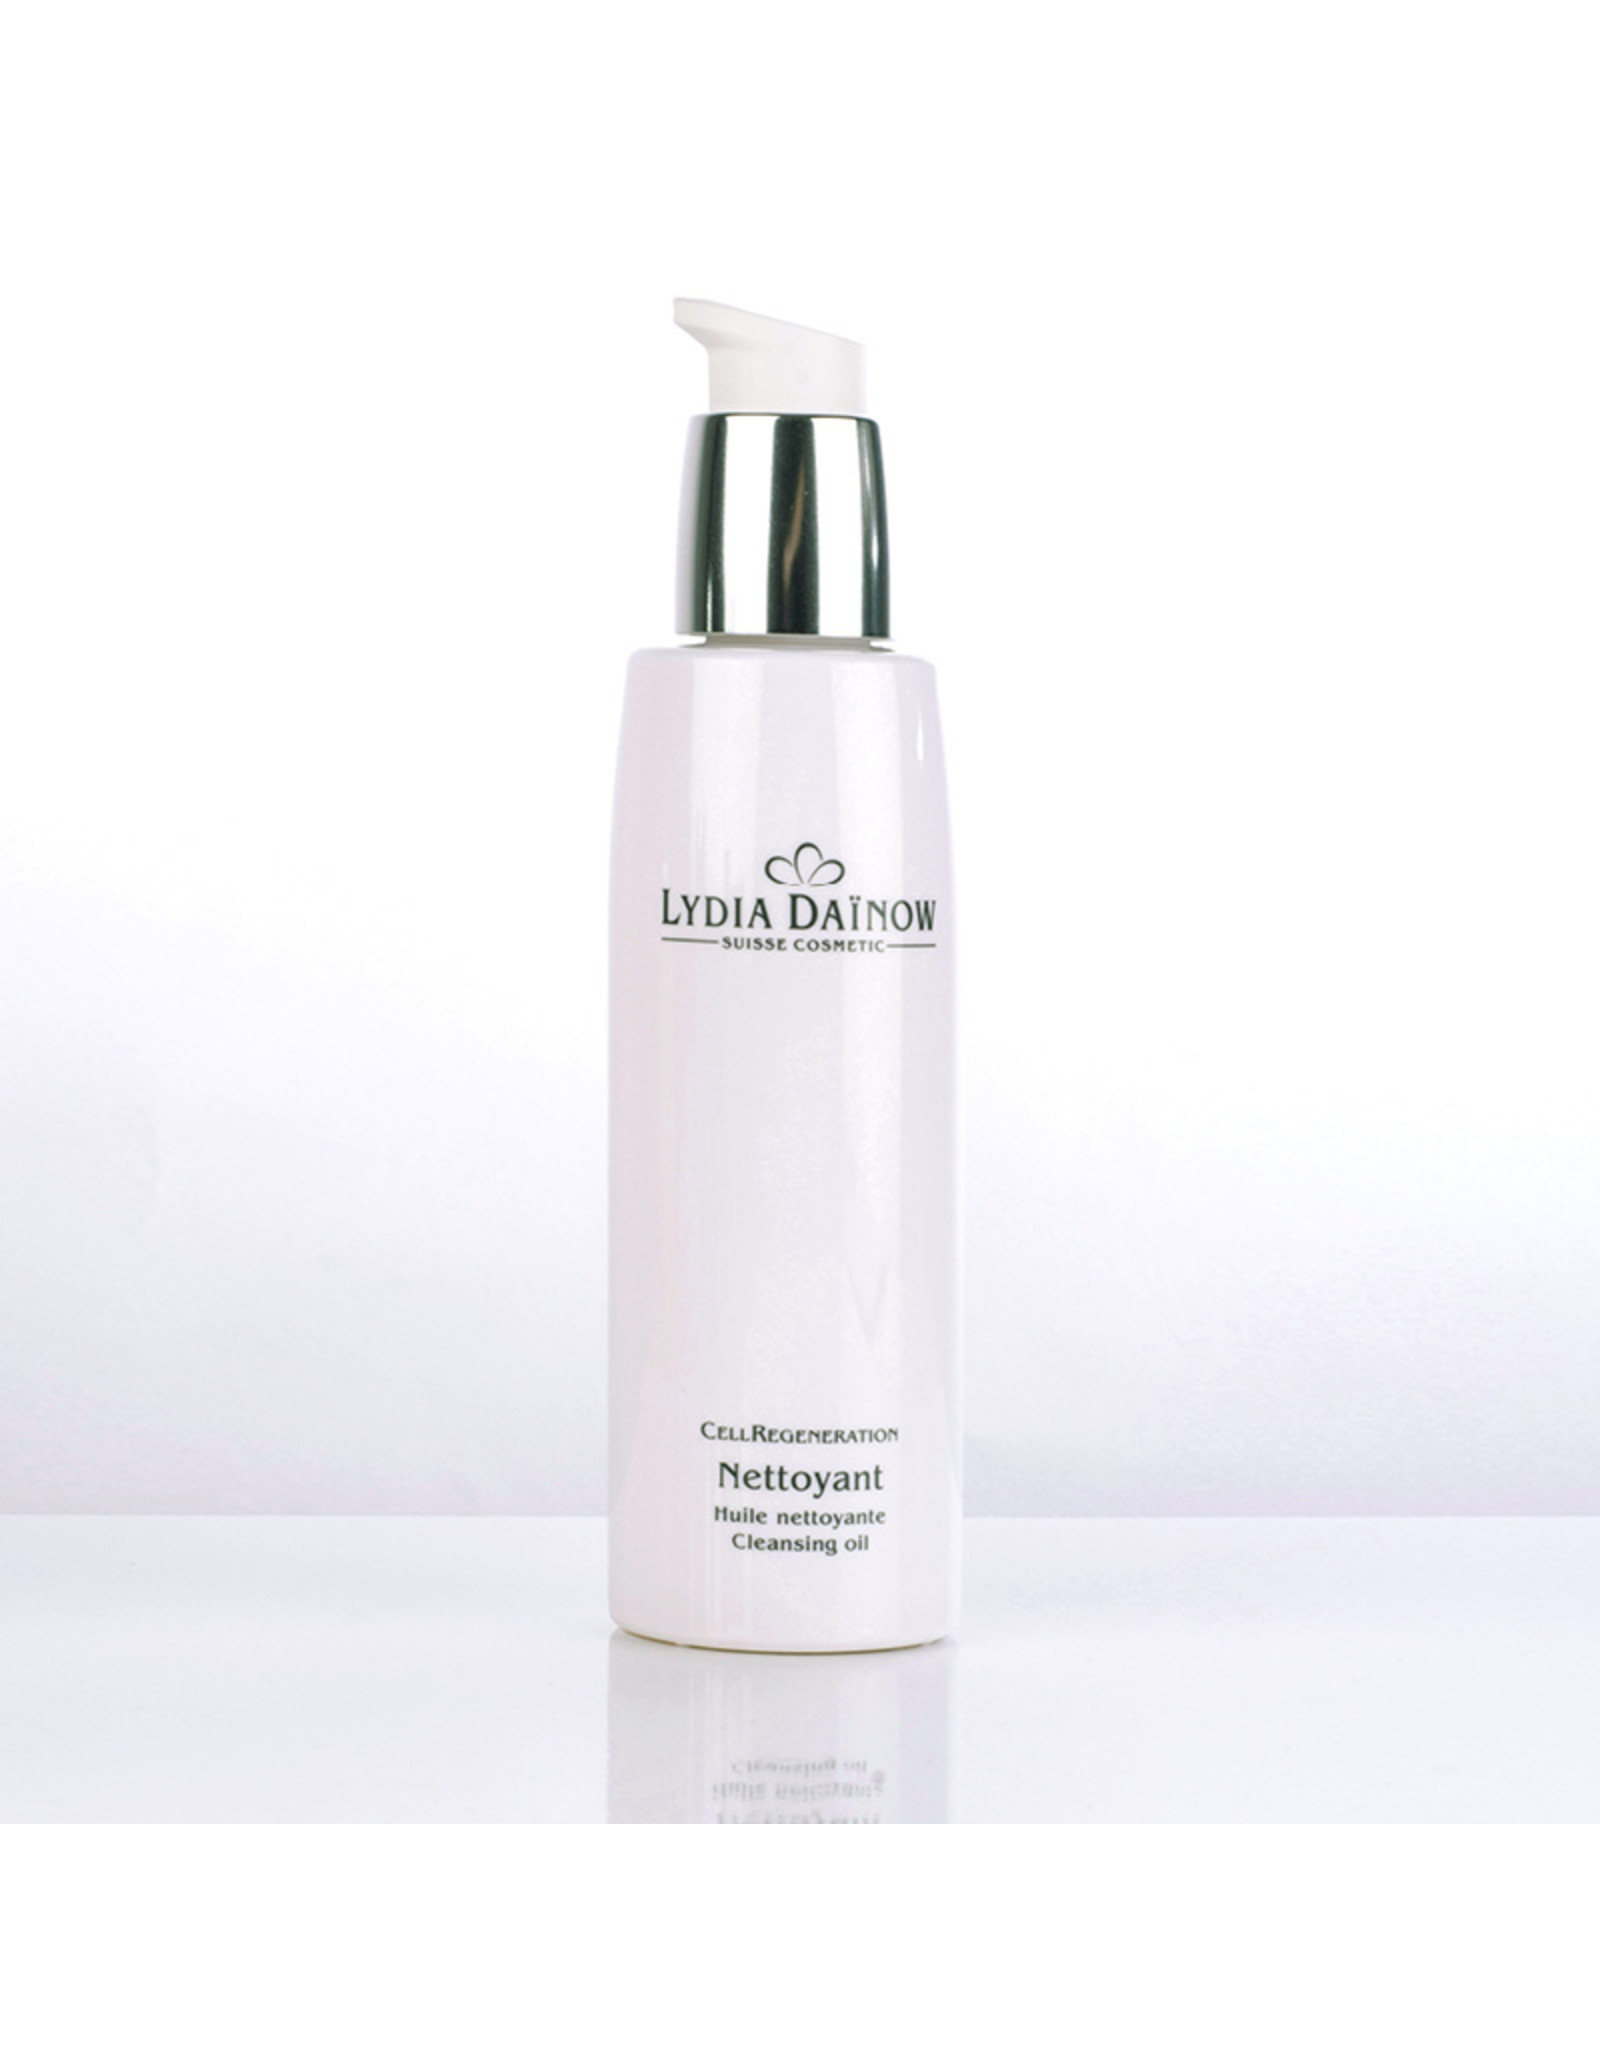 Lydïa Dainow Nettoyant - Cleansing oil